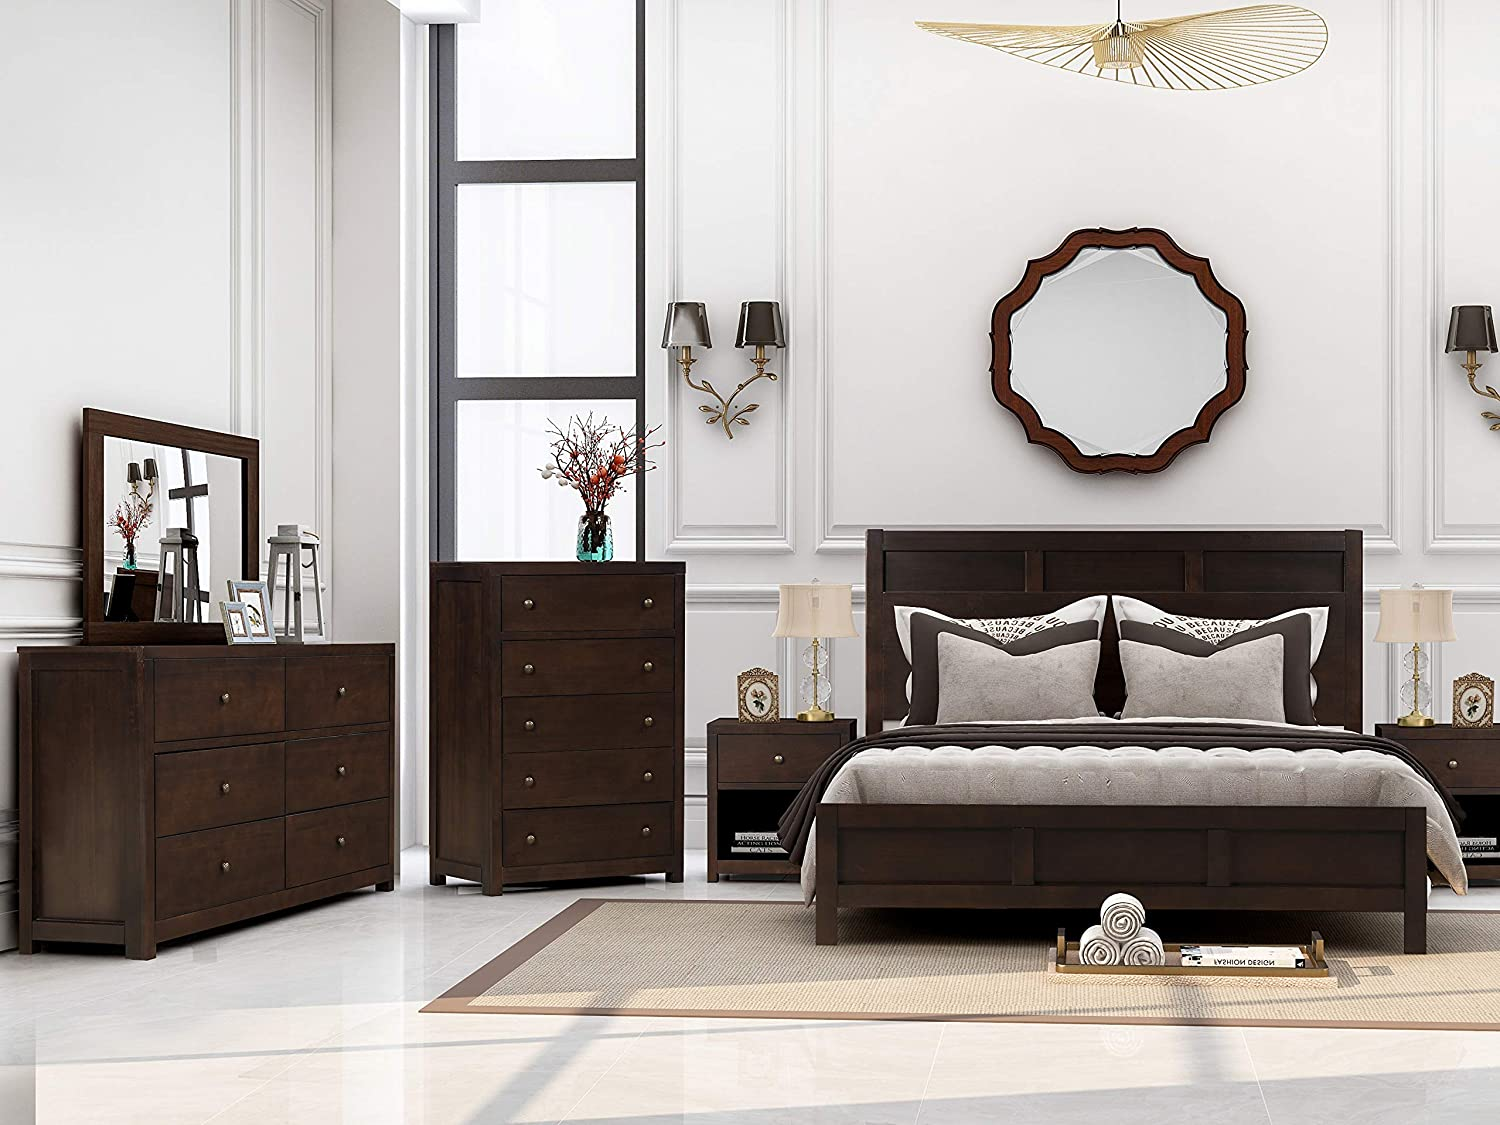 Merax 6 Pieces Bedroom Furniture Set, Bedroom Set with Queen Size Platform Bed, Two Nightstands, Dresser, Chest and Mirror, Rich Brown Color